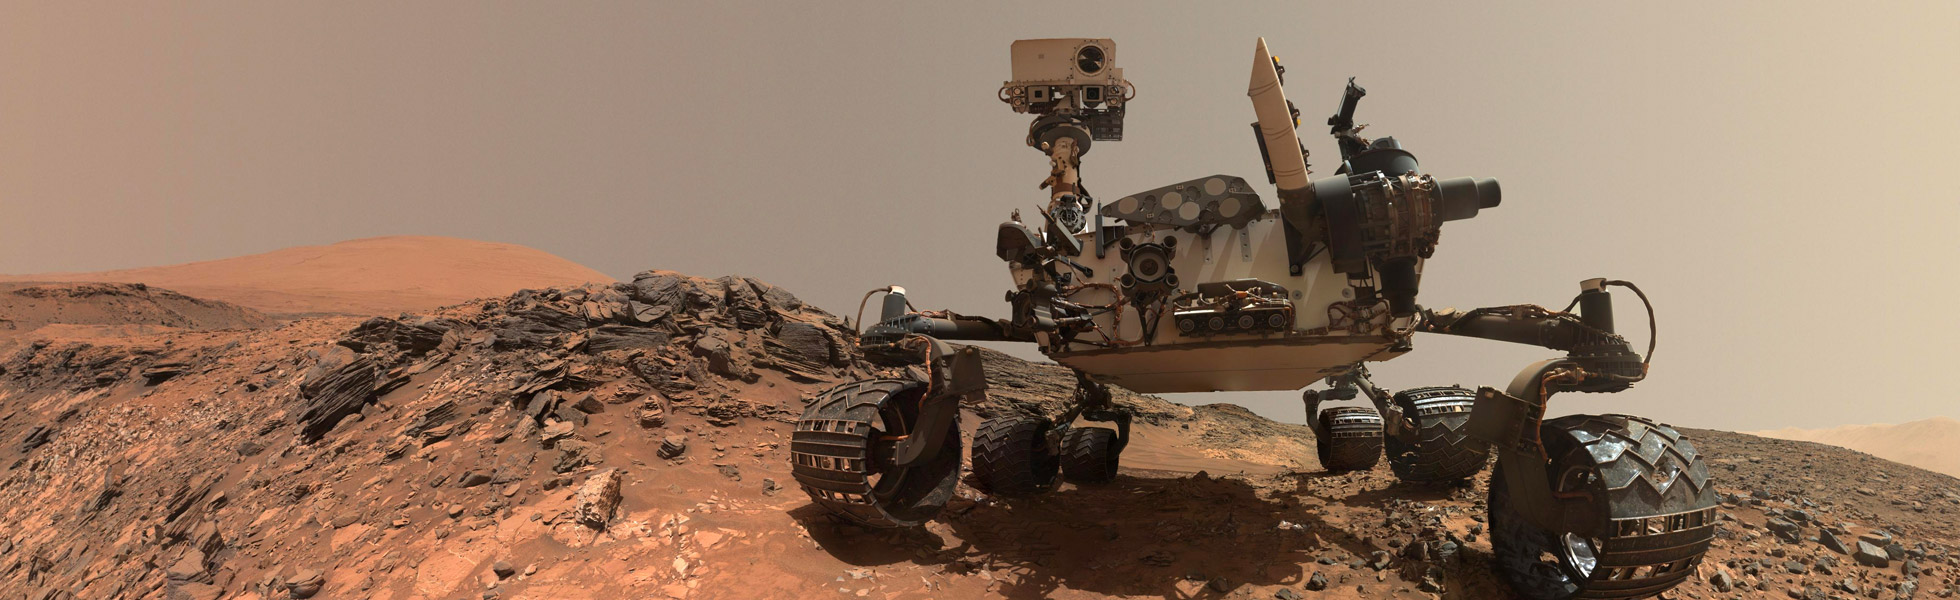 Rover on Mars, awaiting instructions